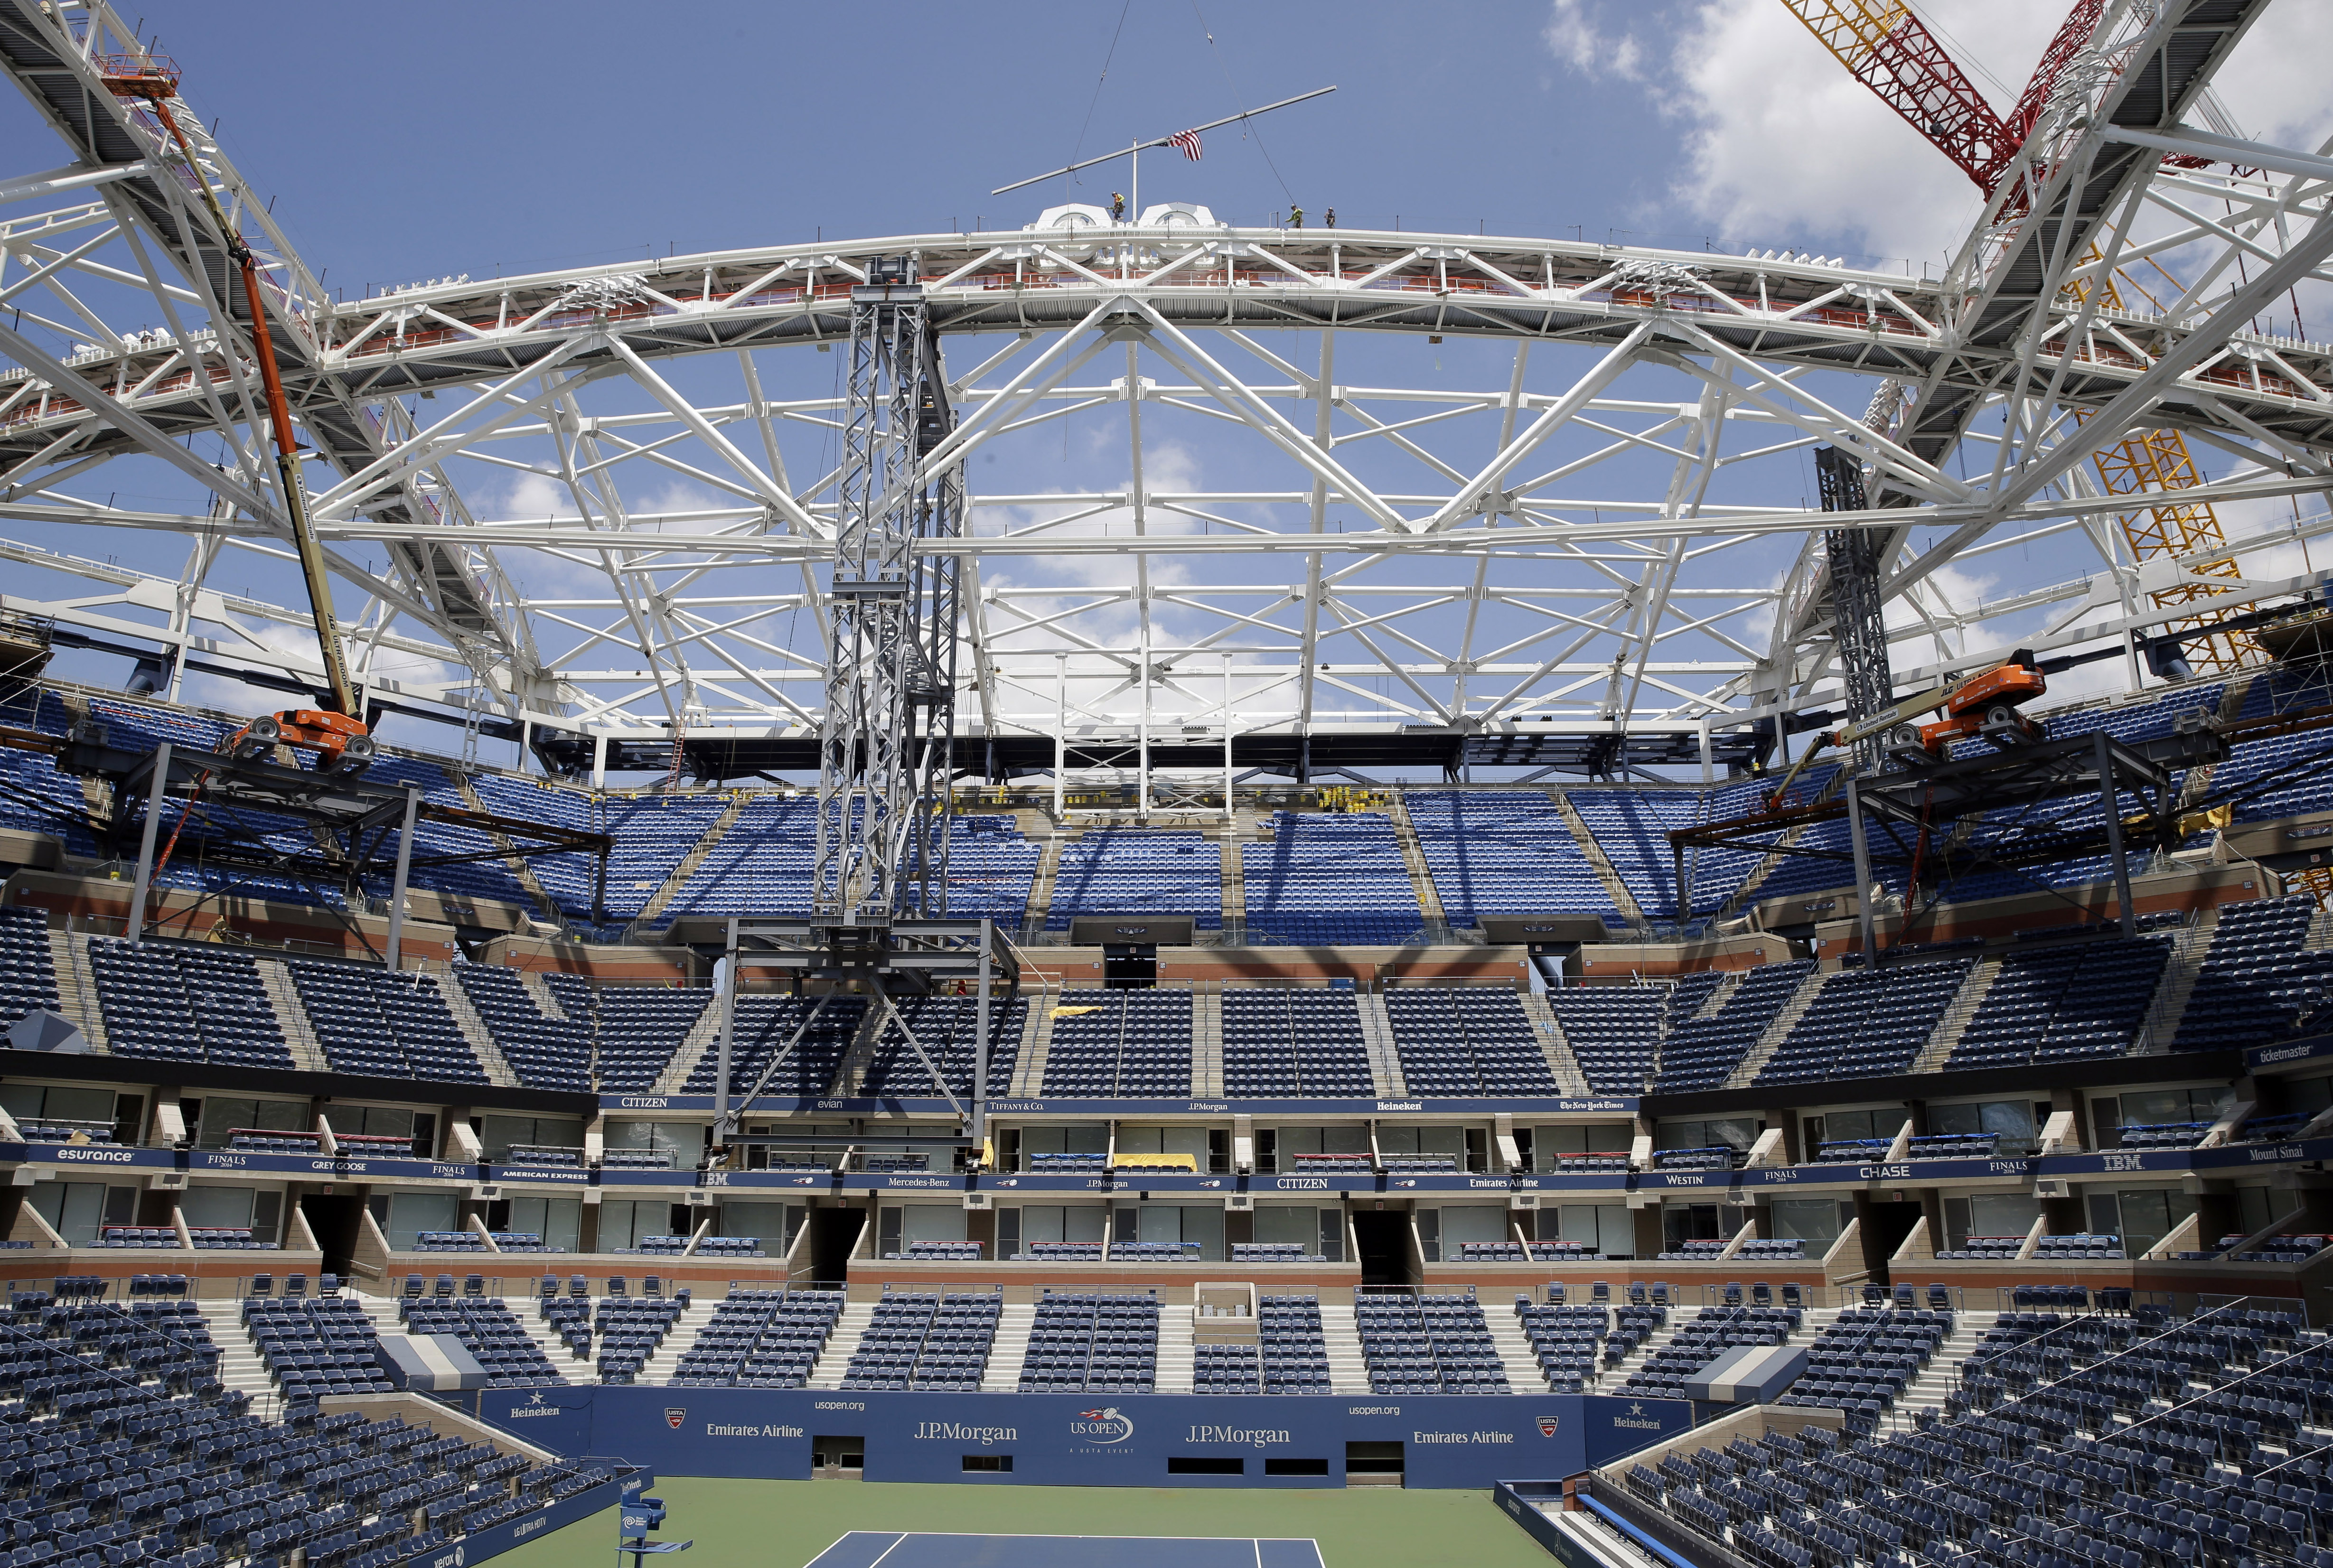 Construction workers place the final piece of steel in the superstructure that will support the retractable roof over the Arthur Ashe Stadium, Wednesday, June 10, 2015, in New York. While Wimbledon and the Australian Open already put retractable roofs ove